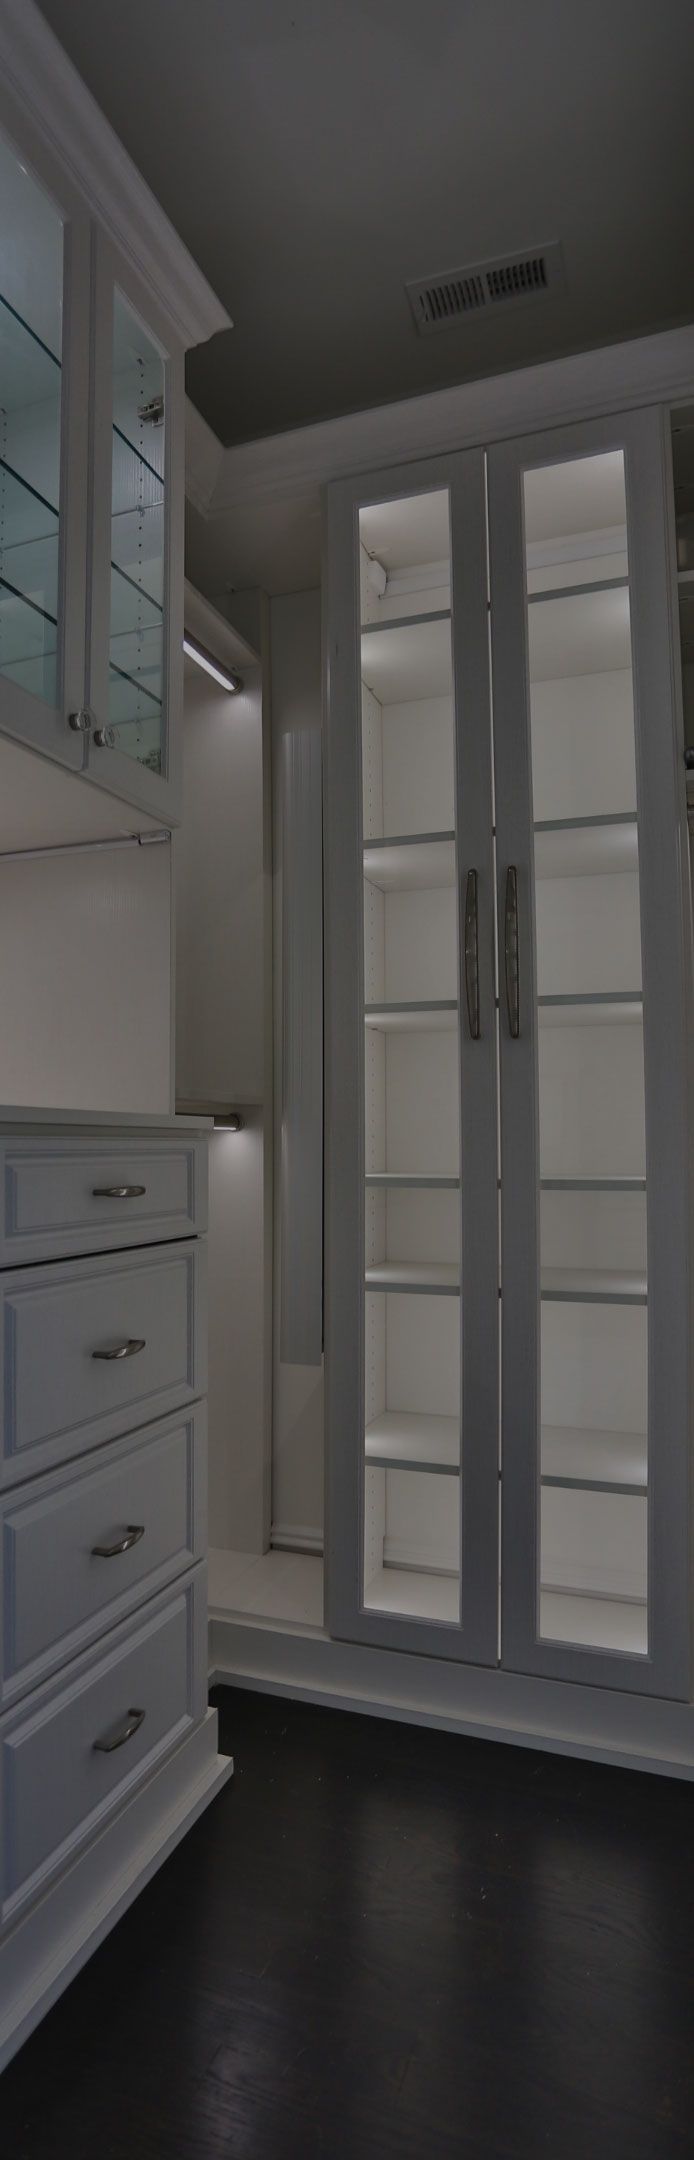 Innovative Closet Designs Custom Bedroom Closet - Latitude North Walk in Closet with Square Style Hutch, LED Closet Lighting, Mullion Doors, Glass Shelves Decorative base and Crown Moulding